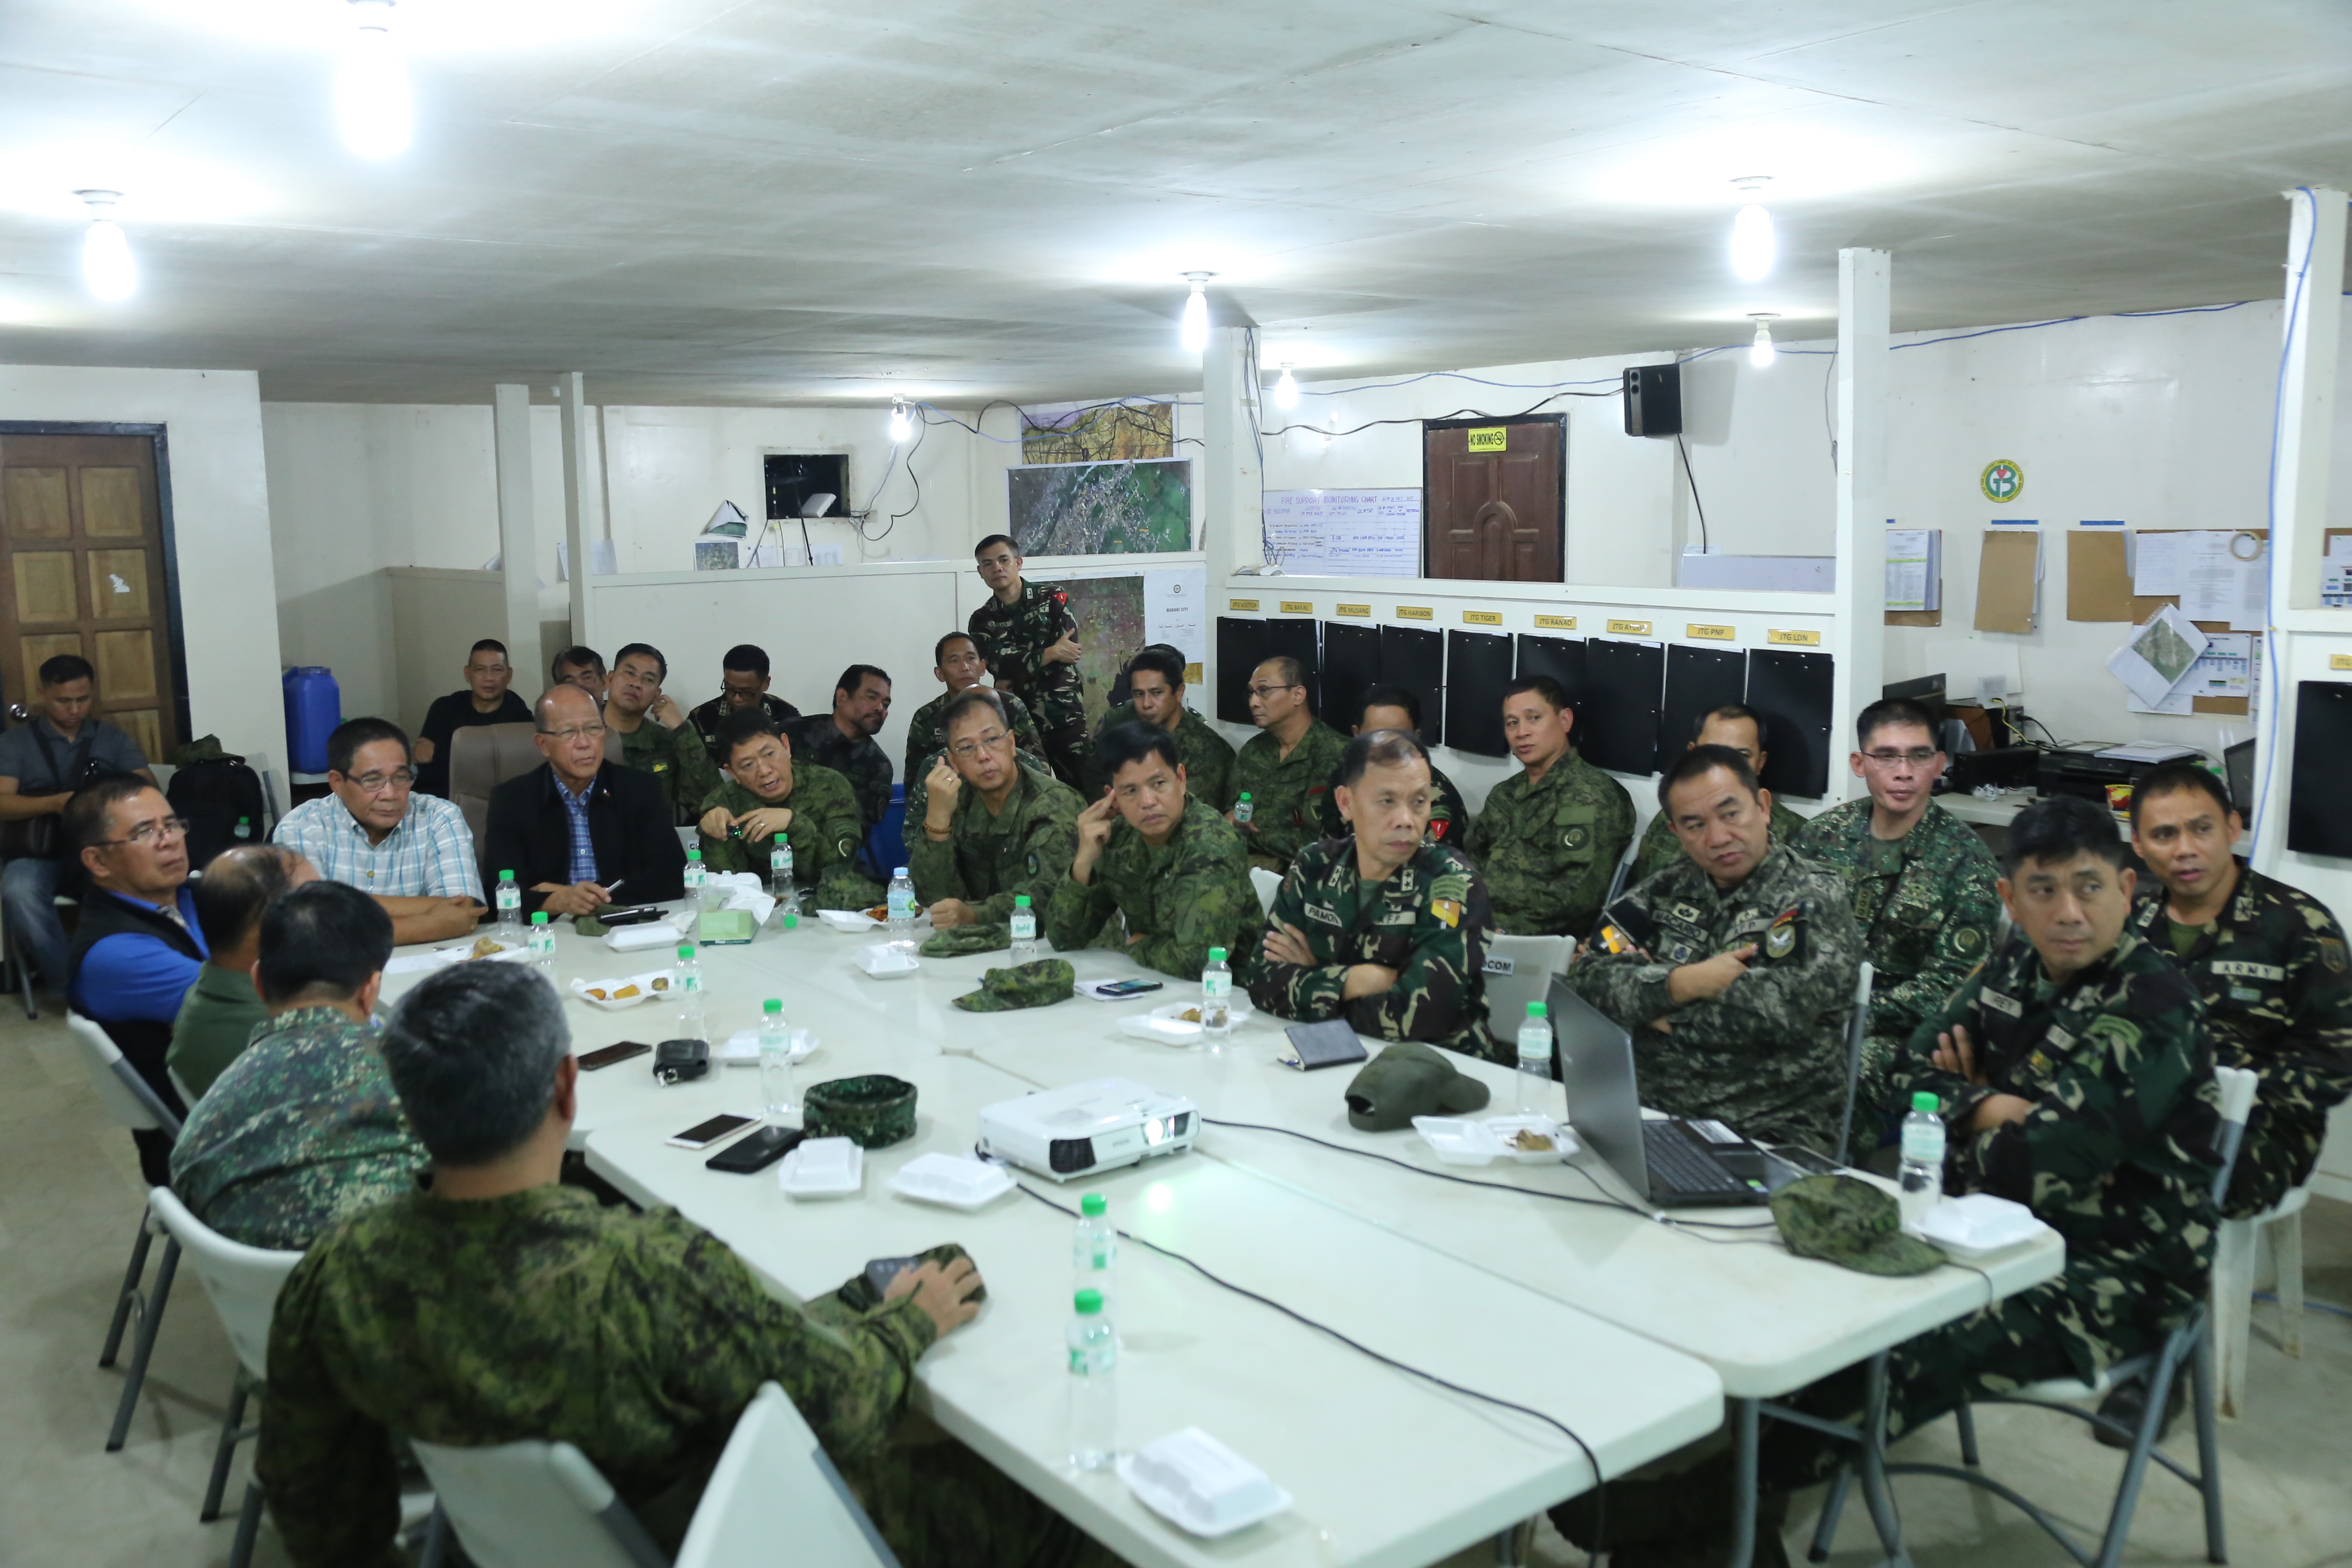 TOP OFFICIALS. National Security Adviser Hermogenes Esperon Jr and Defense Secretary Delfin Lorenzana get a briefing from ground commanders on the 46th day of the Marawi crisis. Photo from AFP